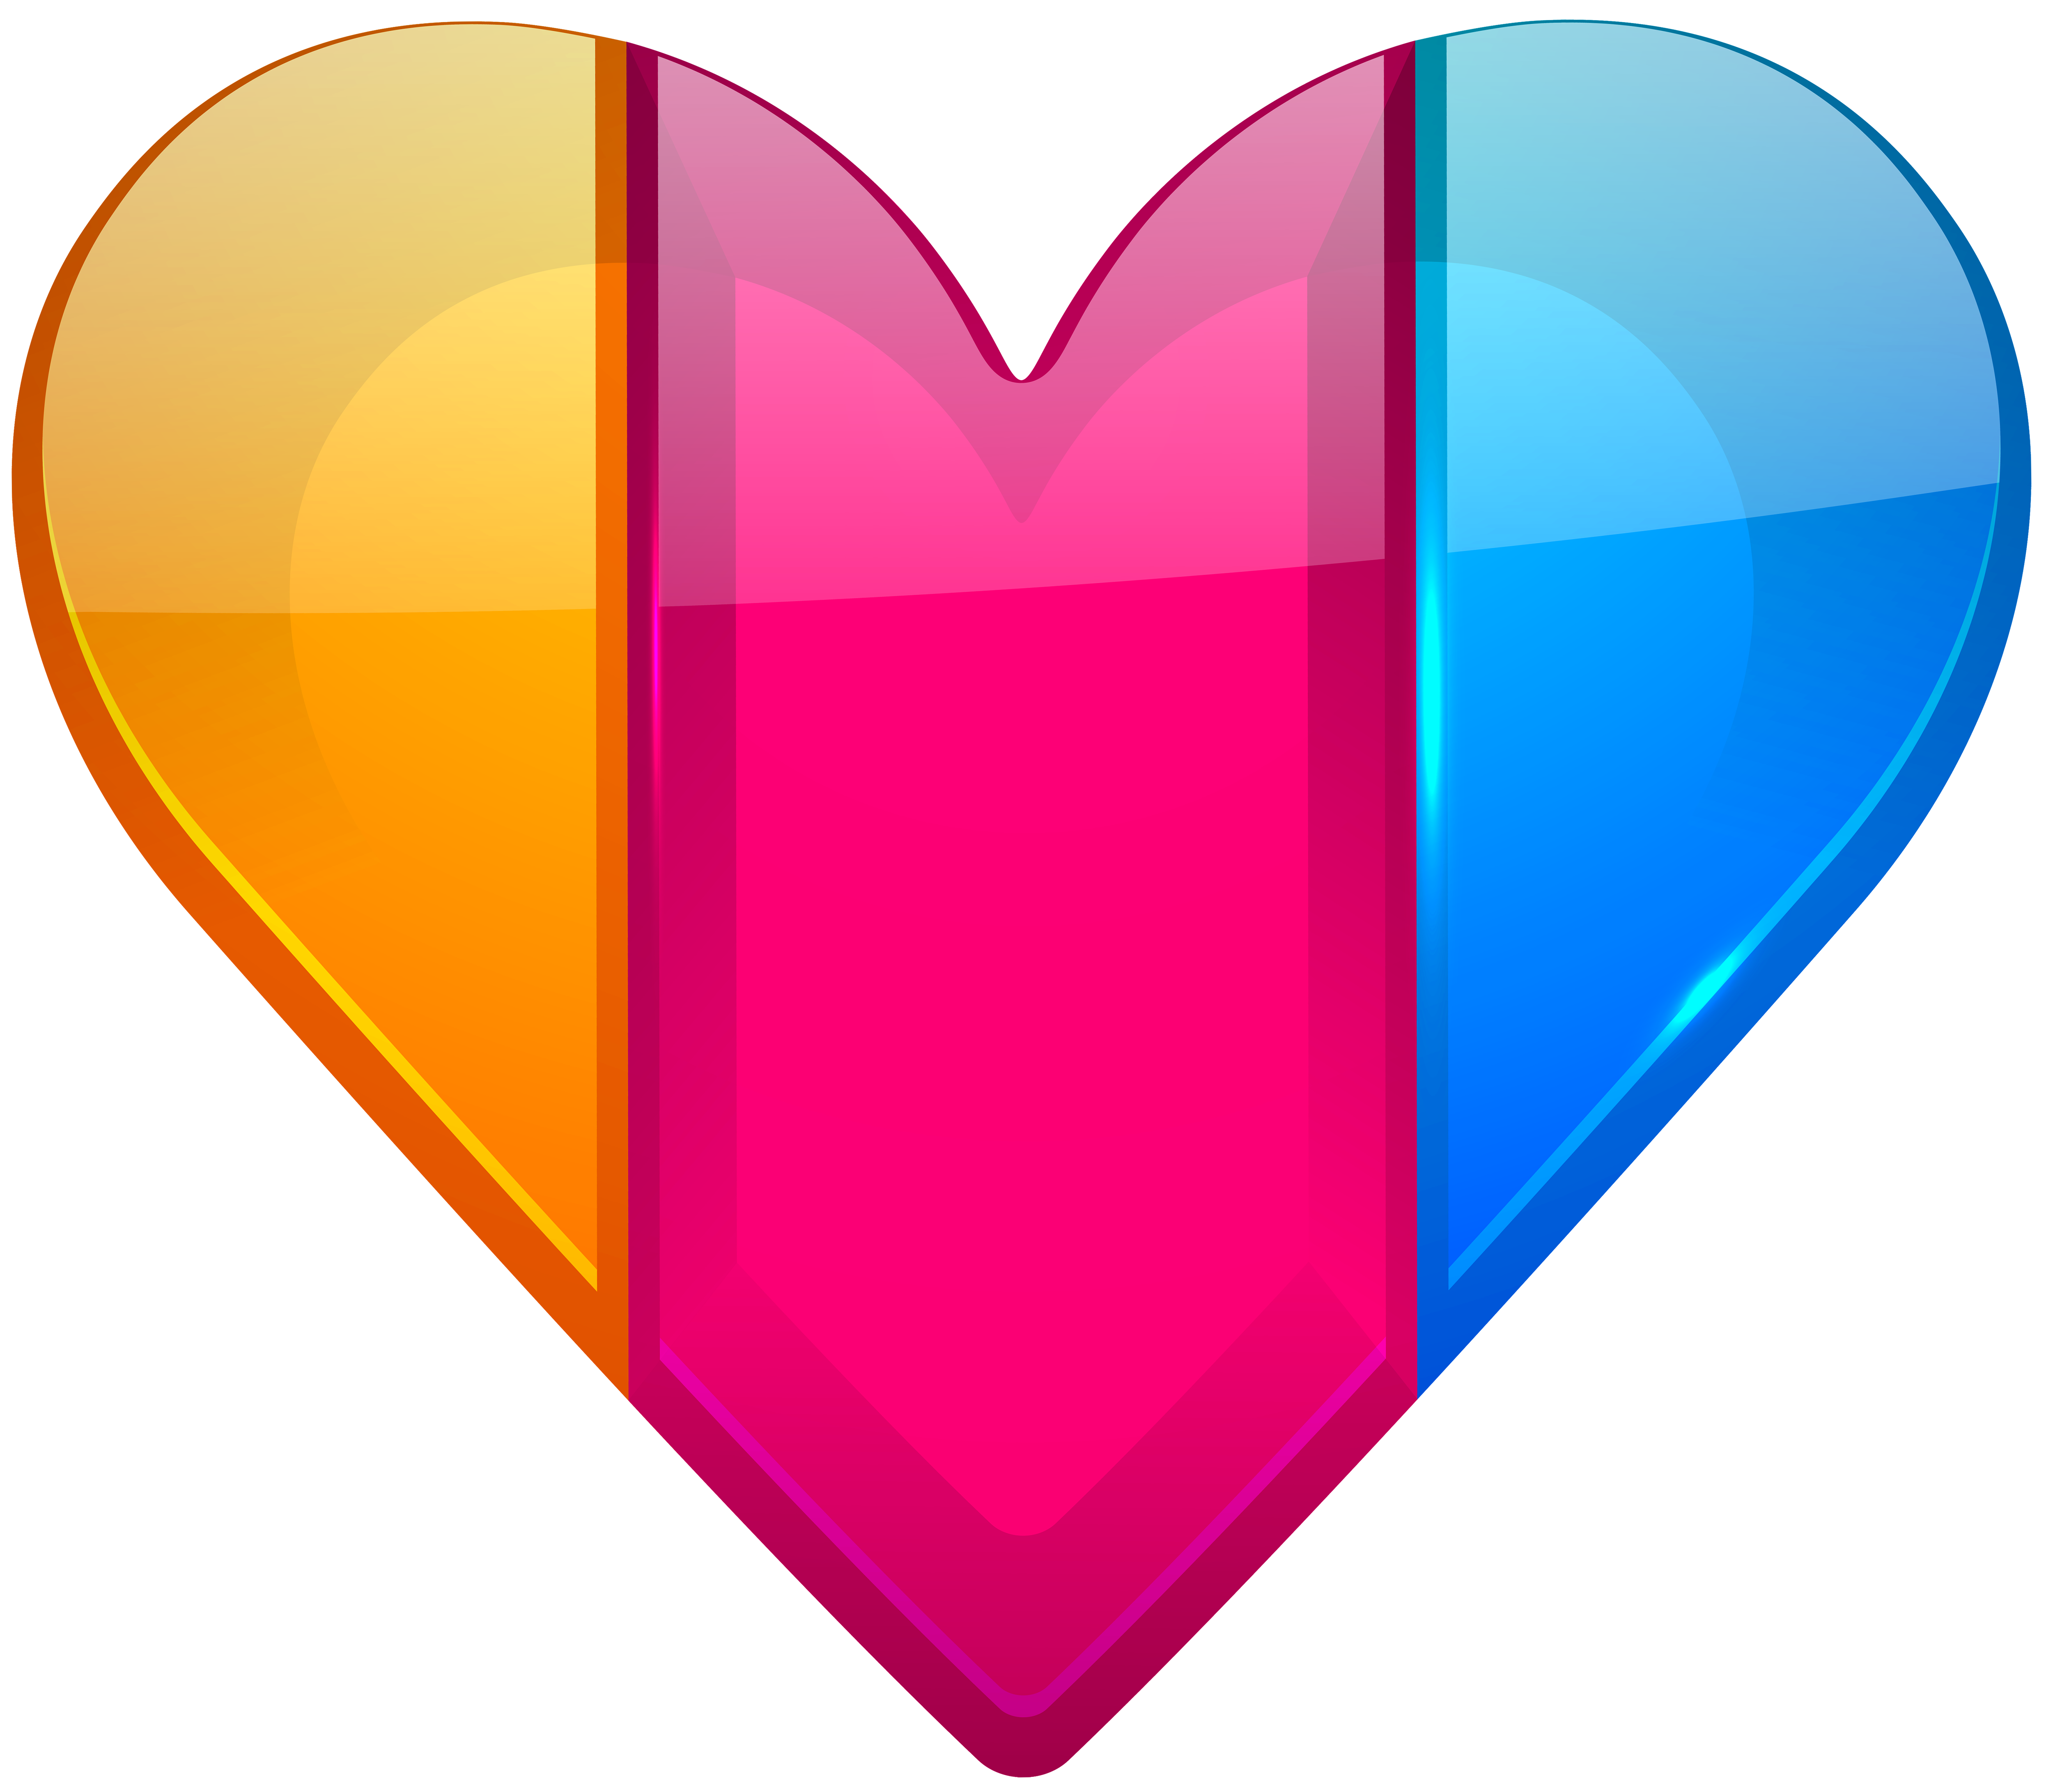 Body heart clipart royalty free Colorful Heart PNG Clipart - Best WEB Clipart royalty free